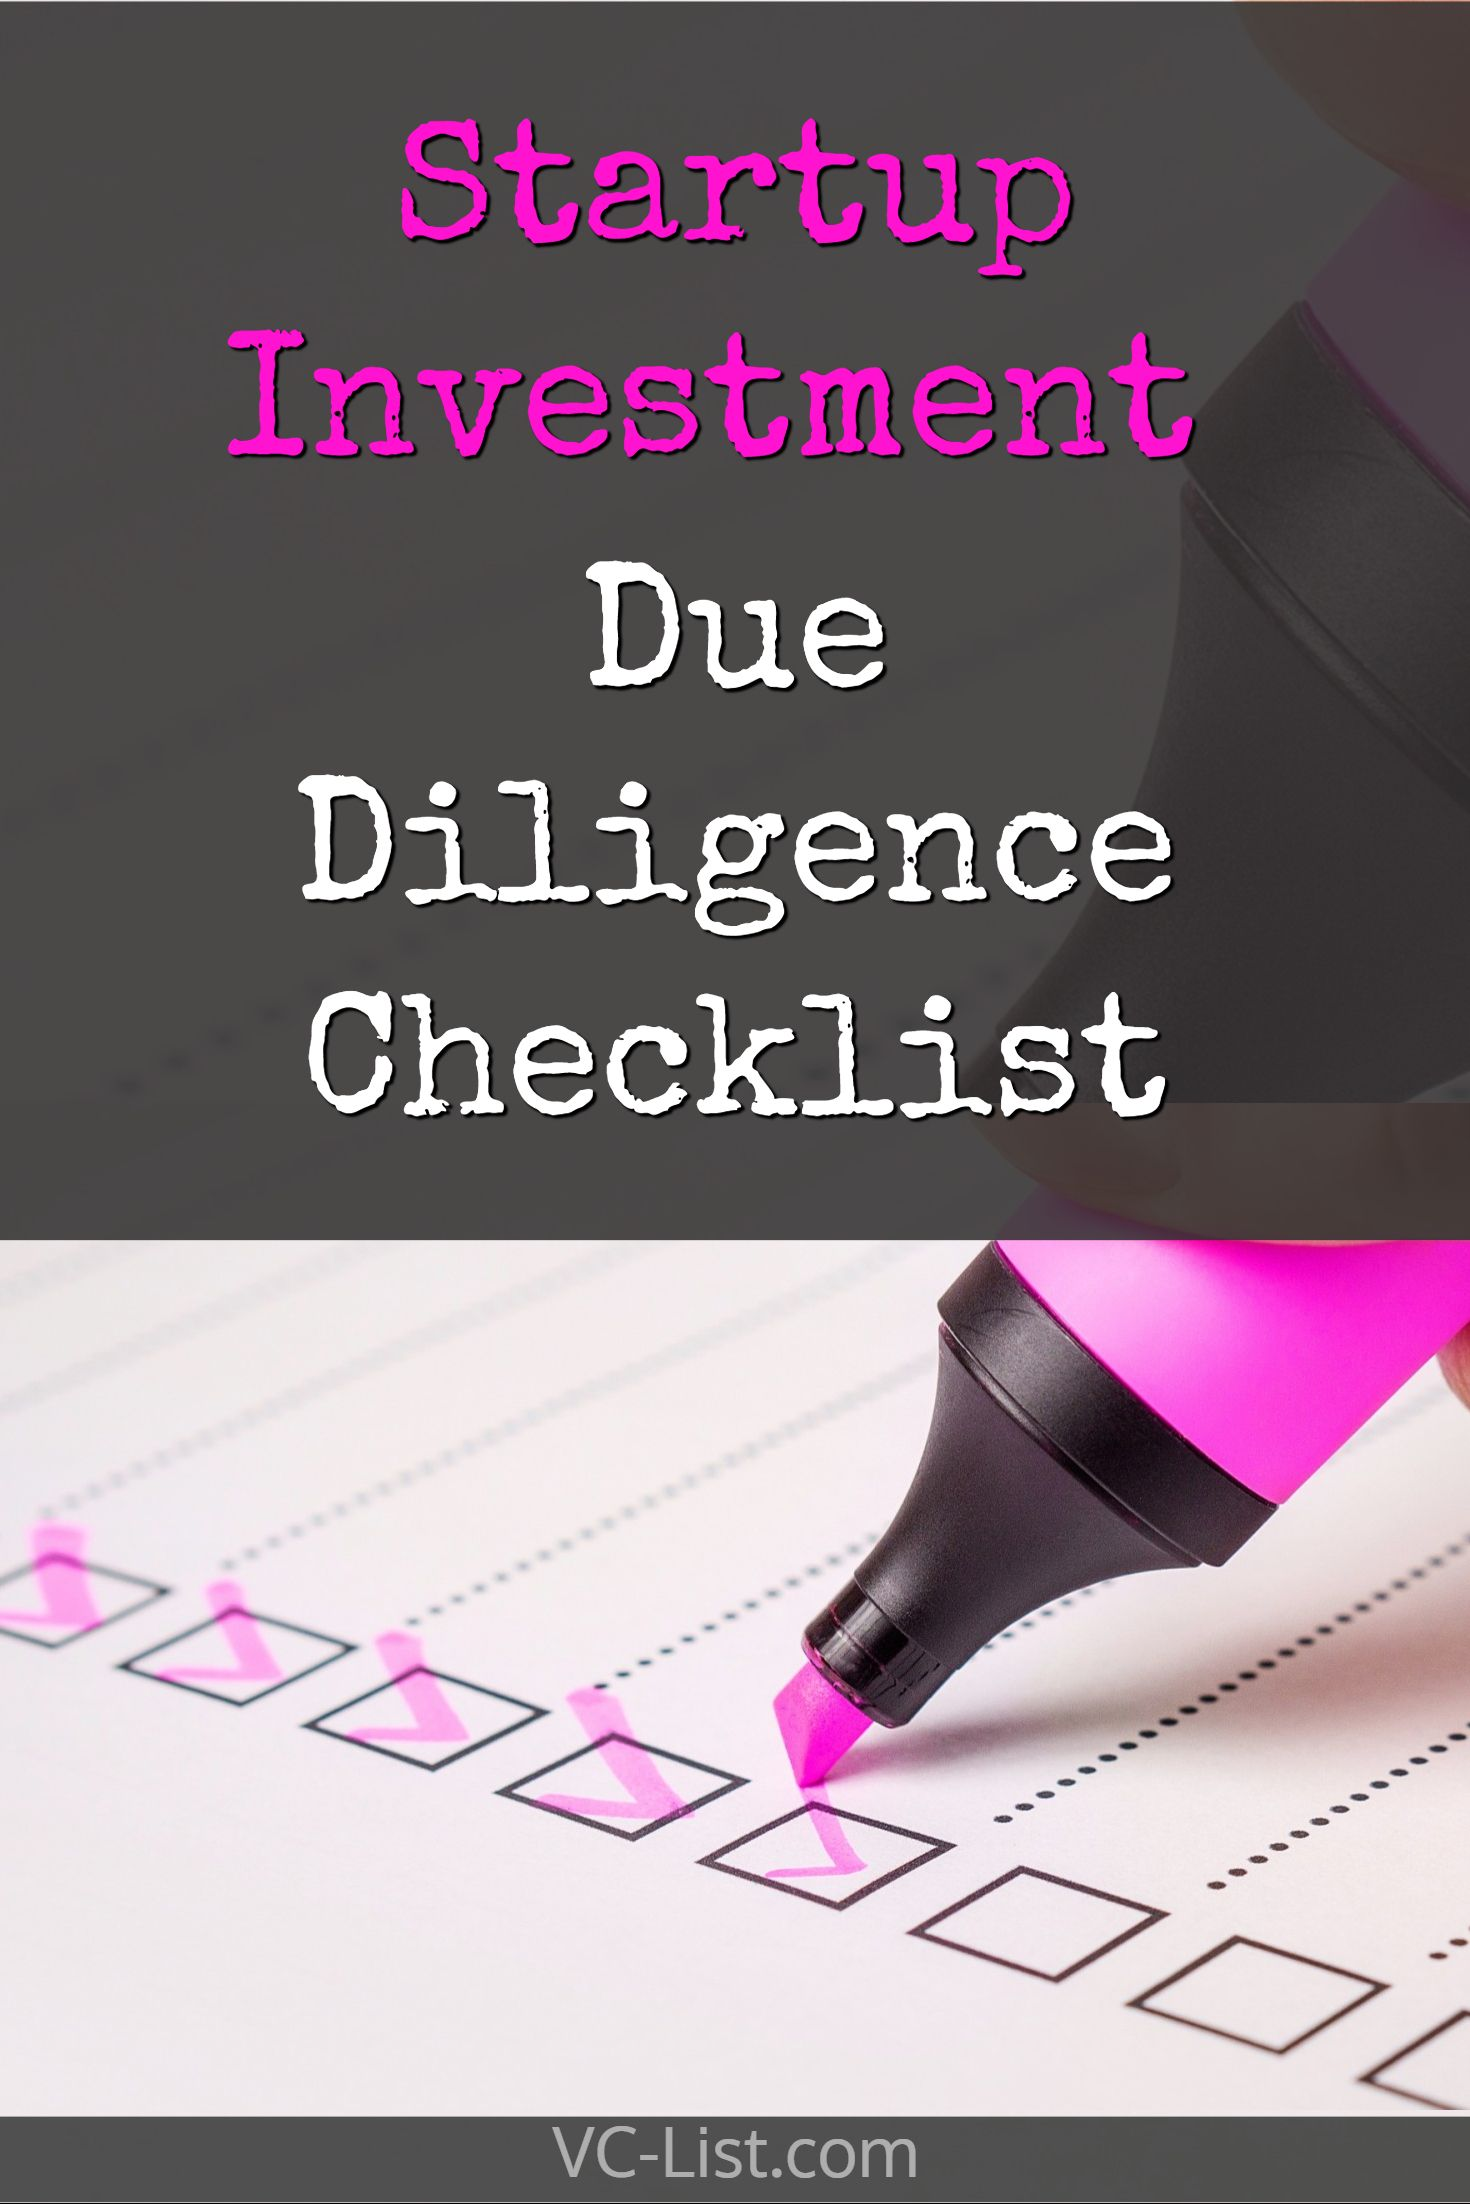 Startup Investment Due Diligence Checklist | Startup and Funding